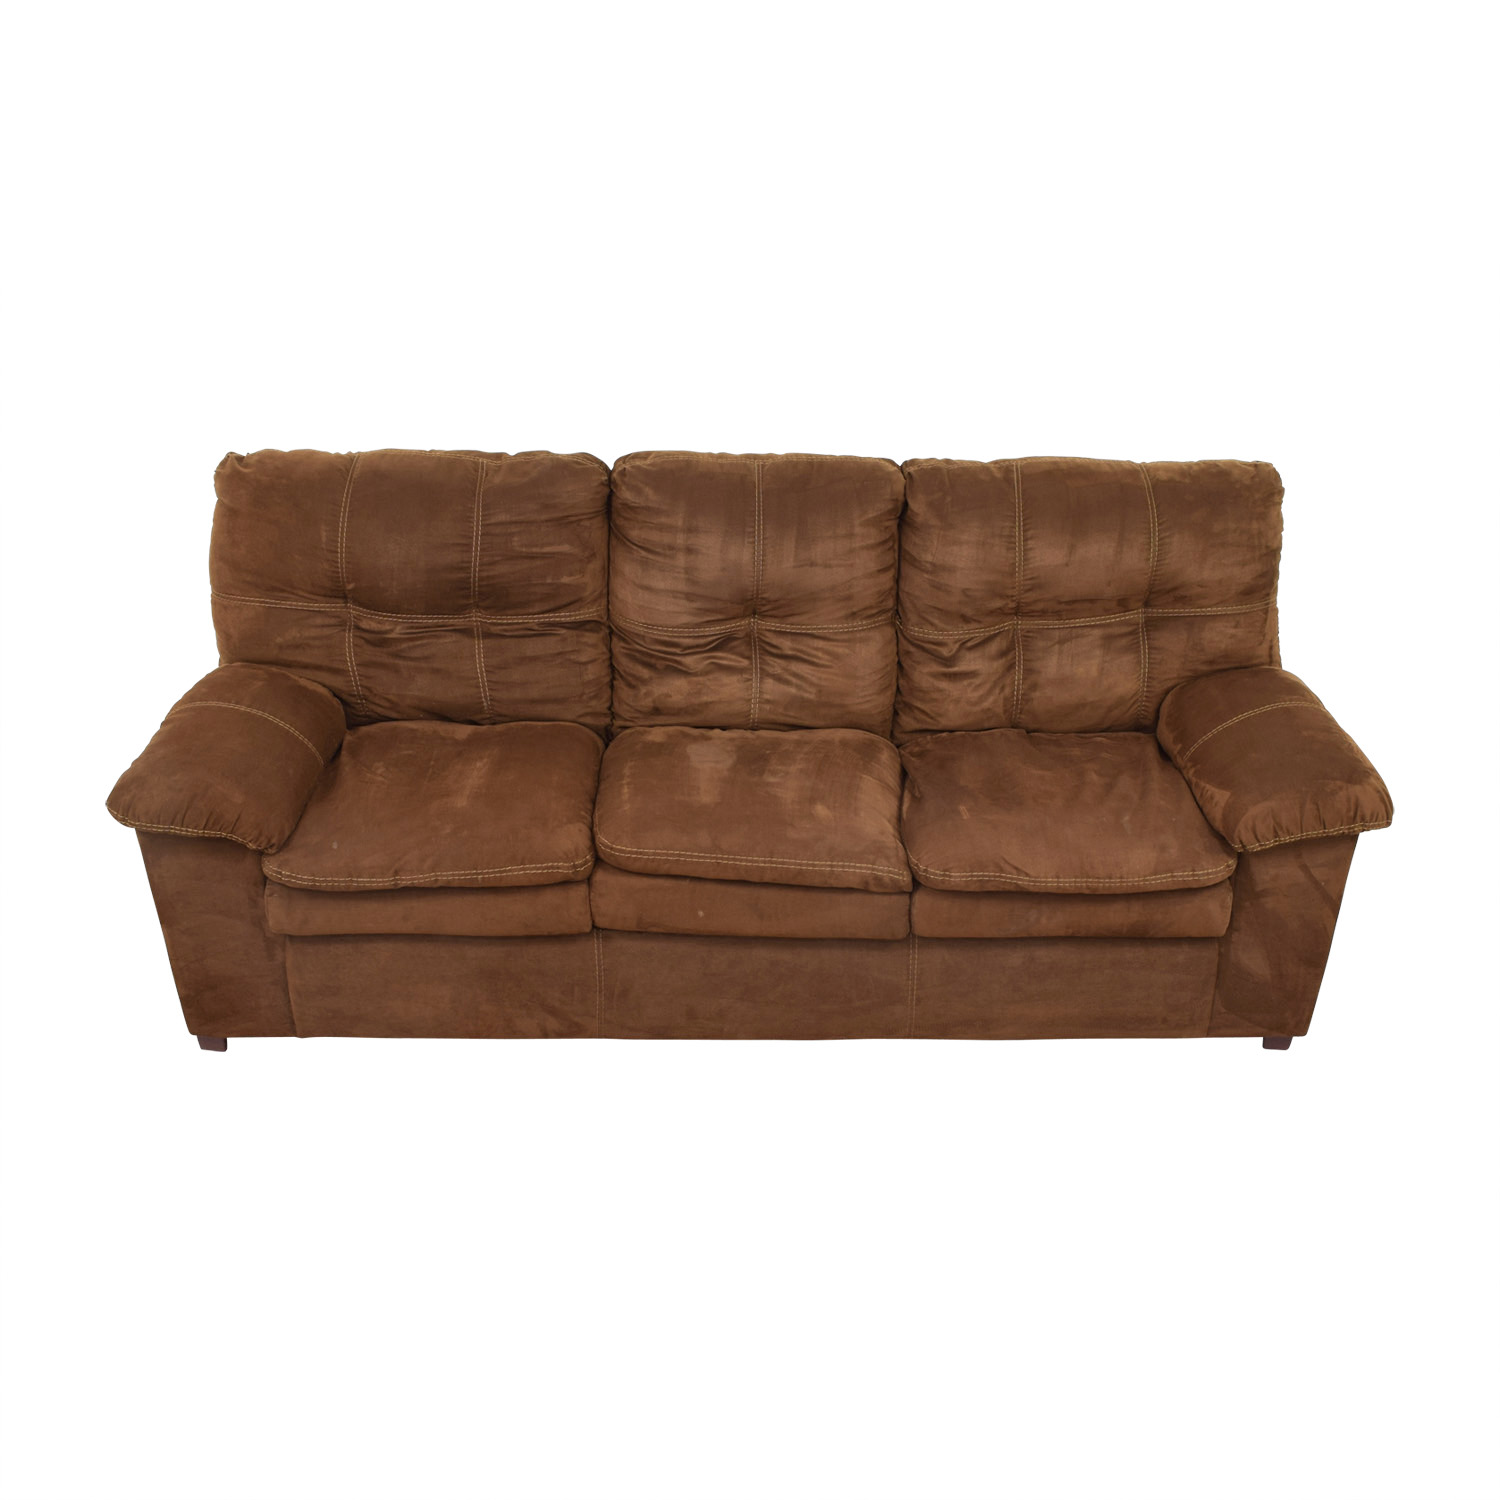 buy  Brown Three-Cushion Pillowed Arms Sofa online